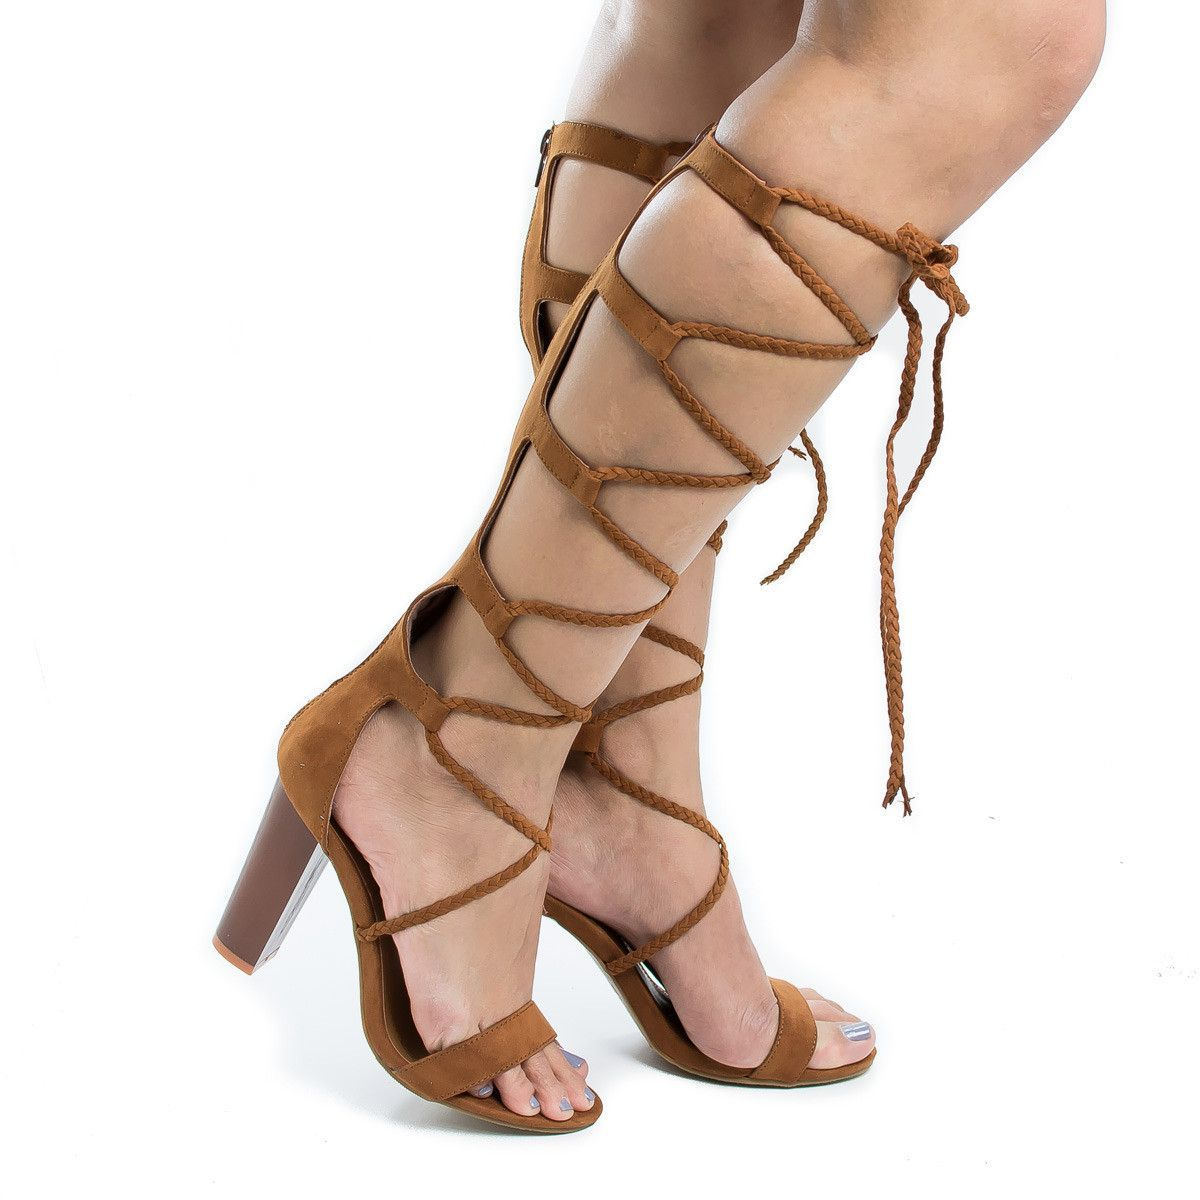 2538f4b35b6 Wildfire20S Knee High Braided Lace Up Gladiator Leg Wrap Heeled Sandals